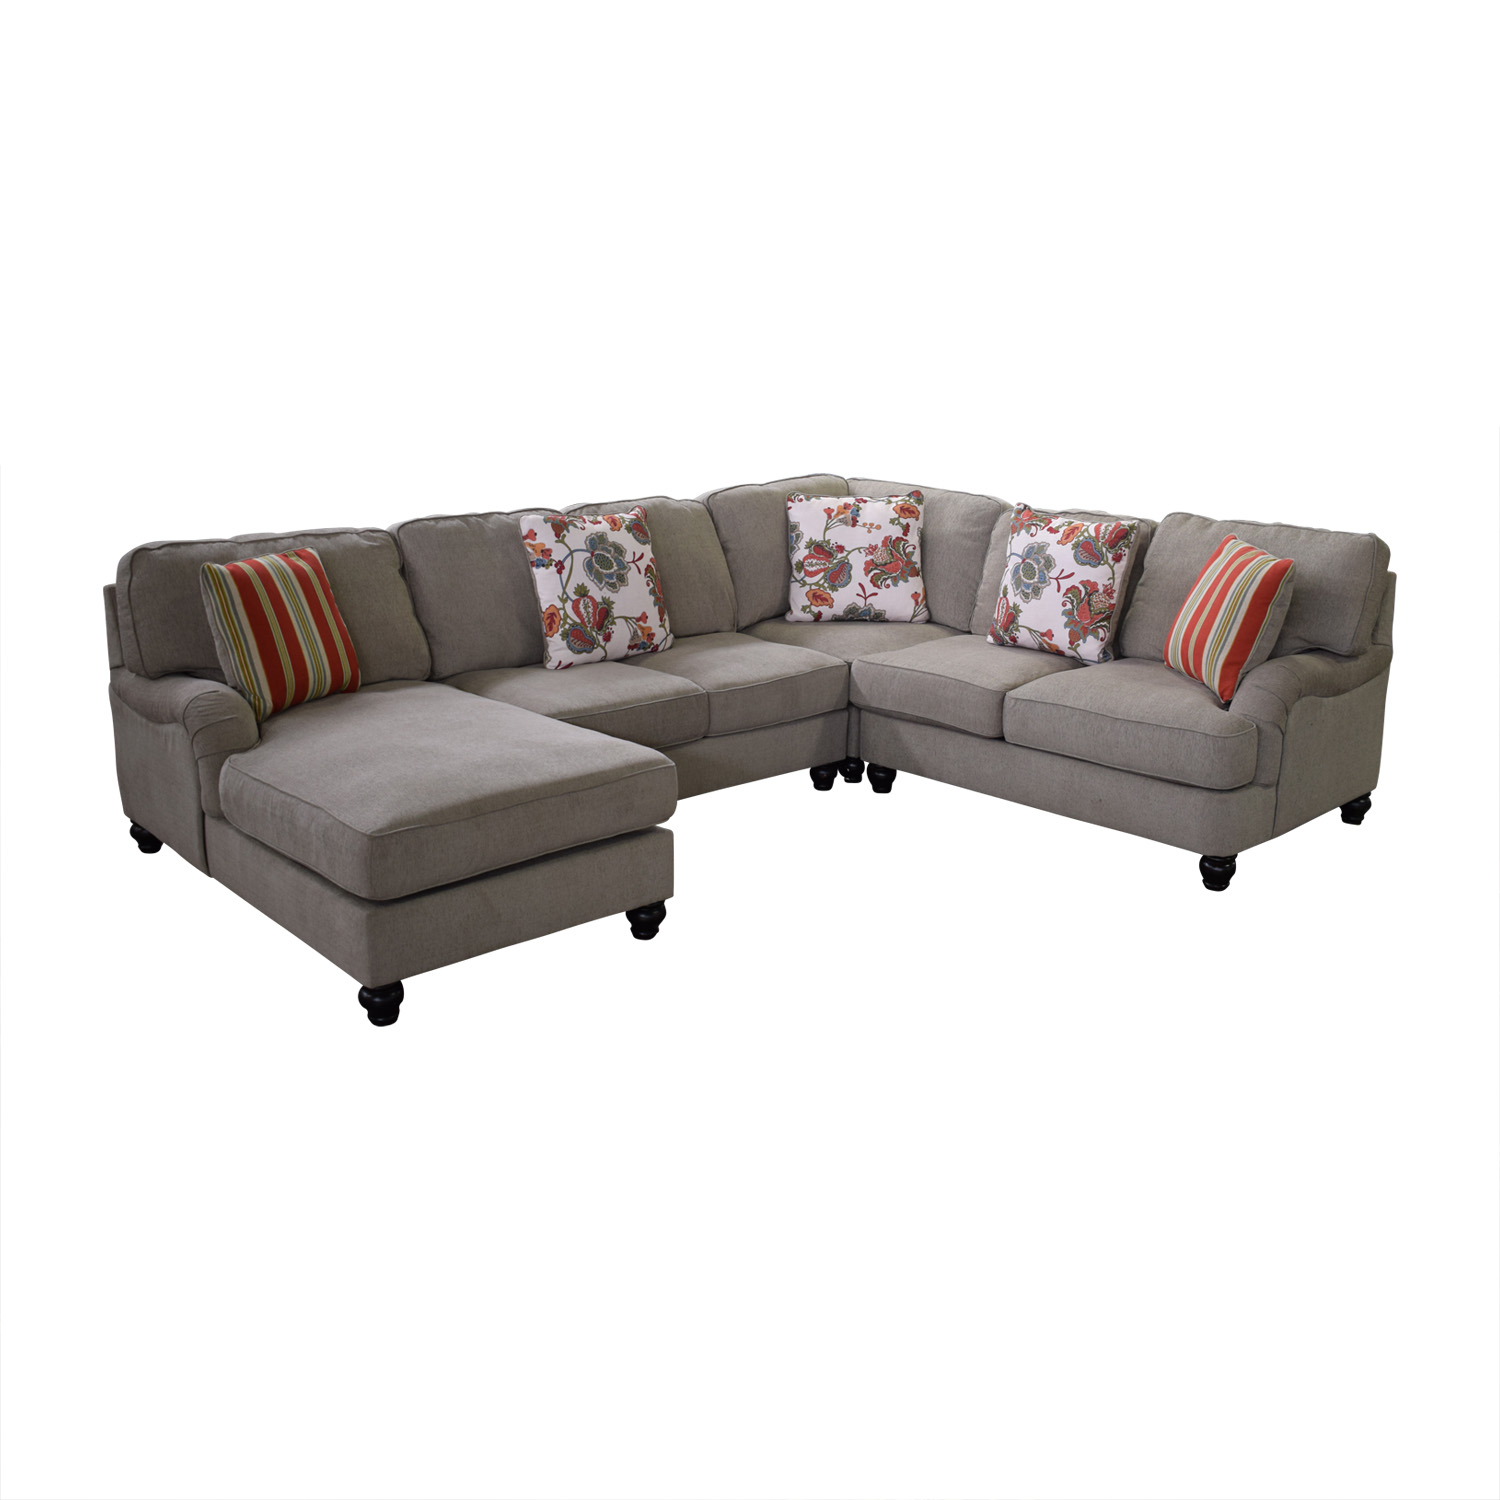 Ashley Furniture Chaise Sectional Sofa / Sofas